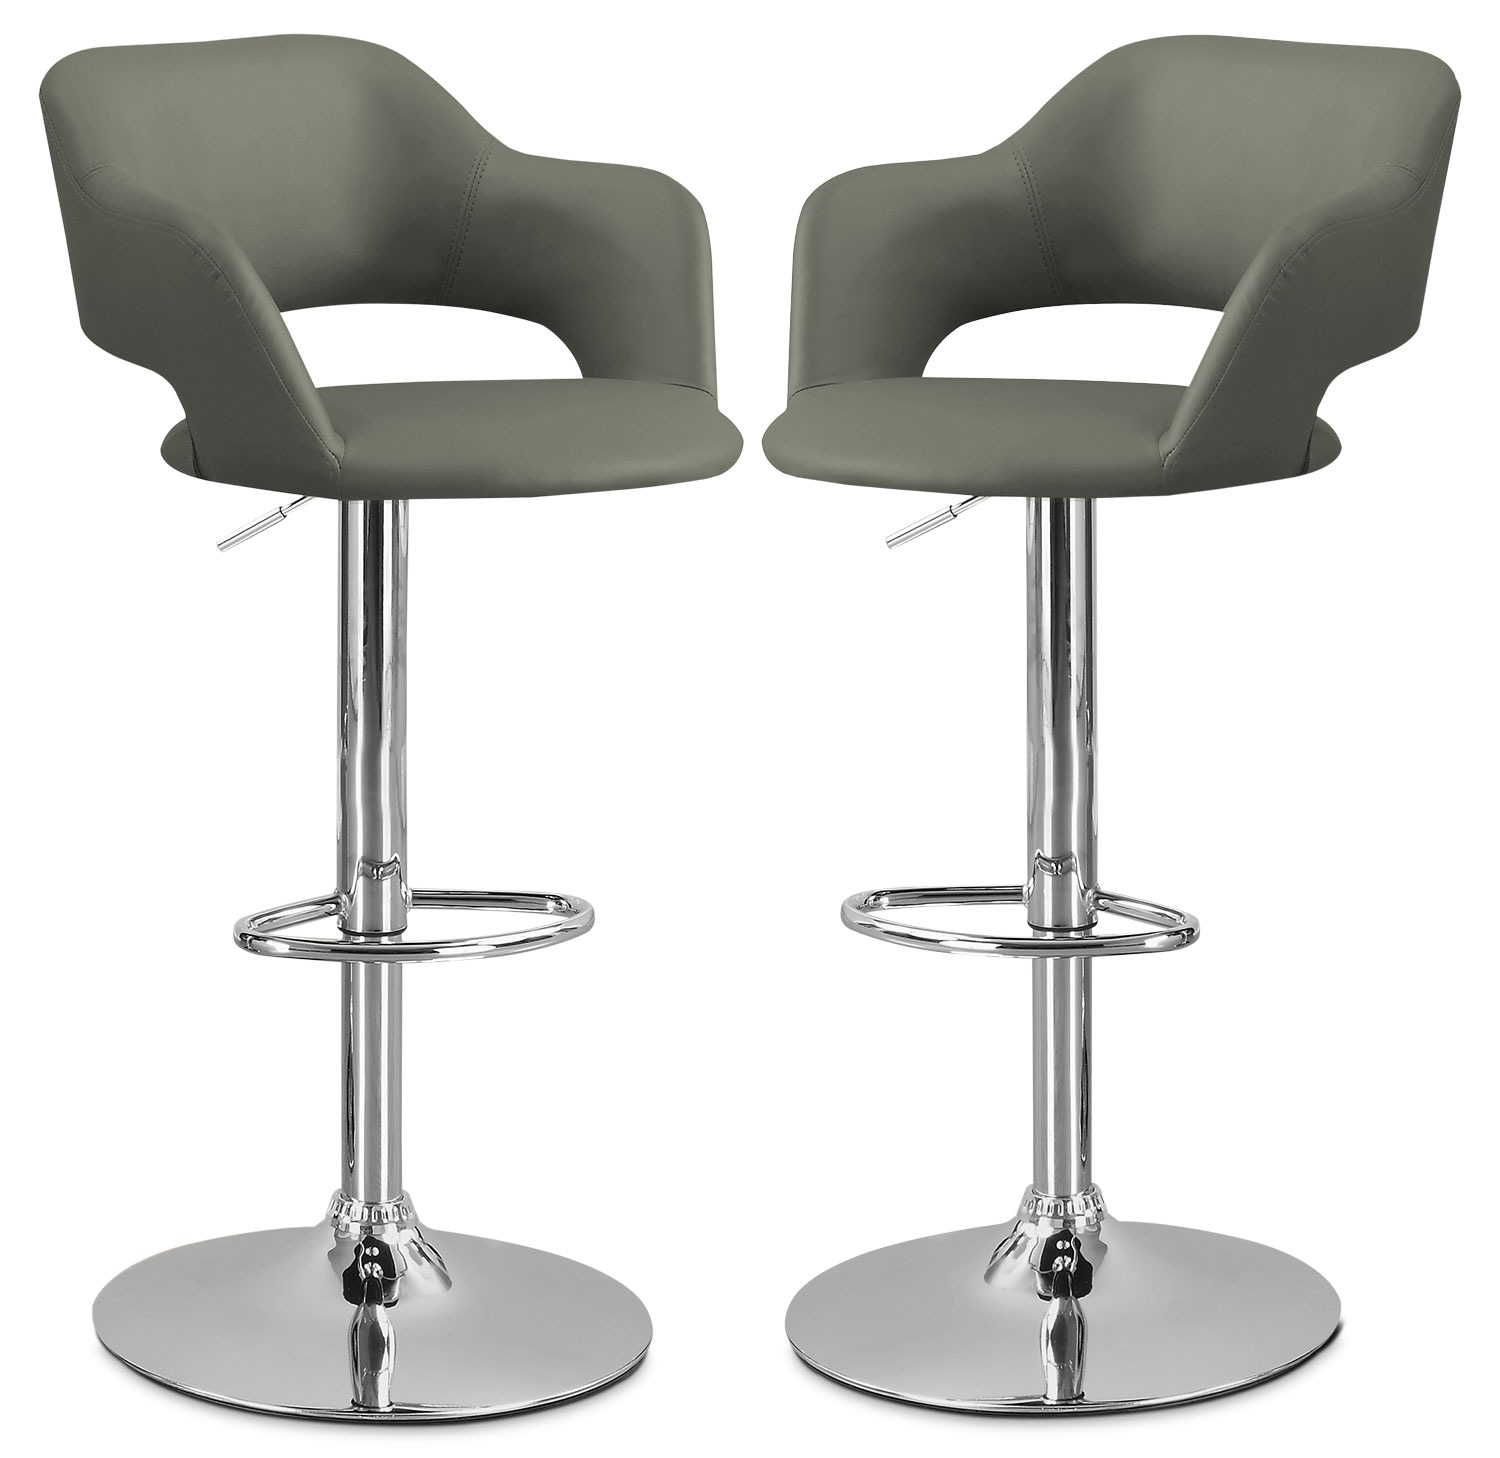 Monarch hydraulic contemporary bar stool set of 2 grey - The benefits of contemporary bar furniture ...